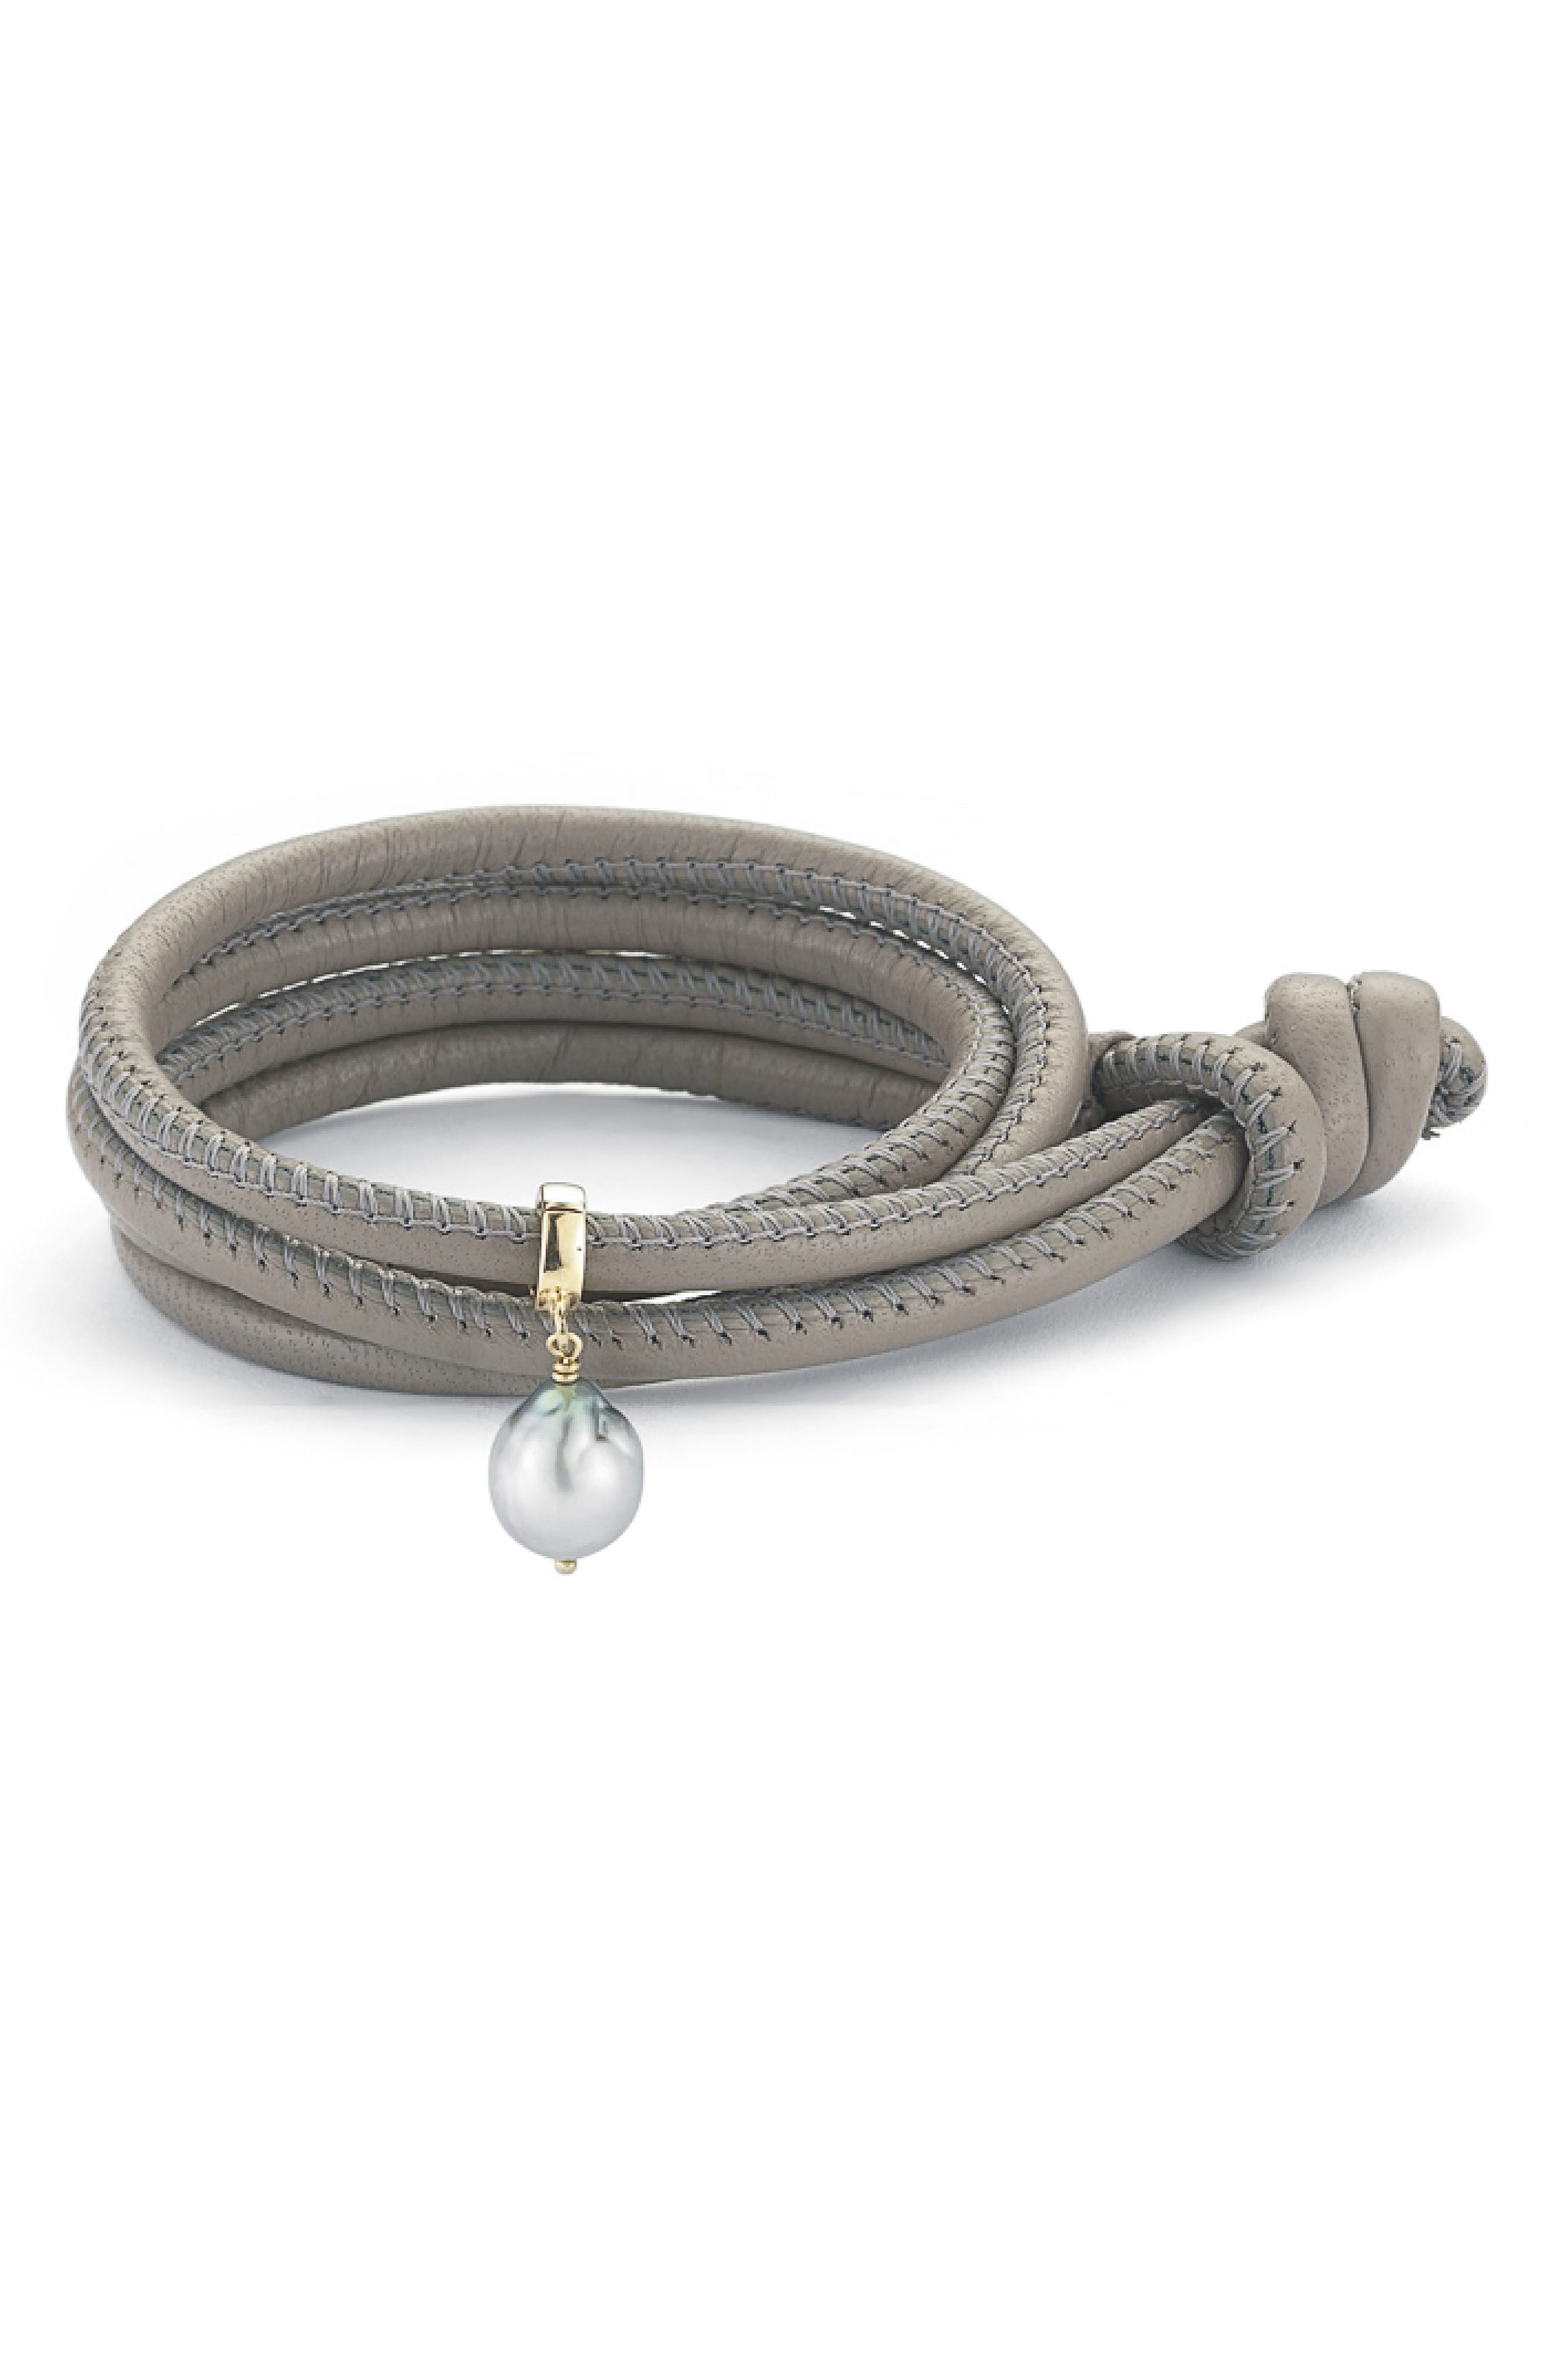 Leather & Freshwater Pearl Convertible Choker,                         Main,                         color, TAUPE LEATHER